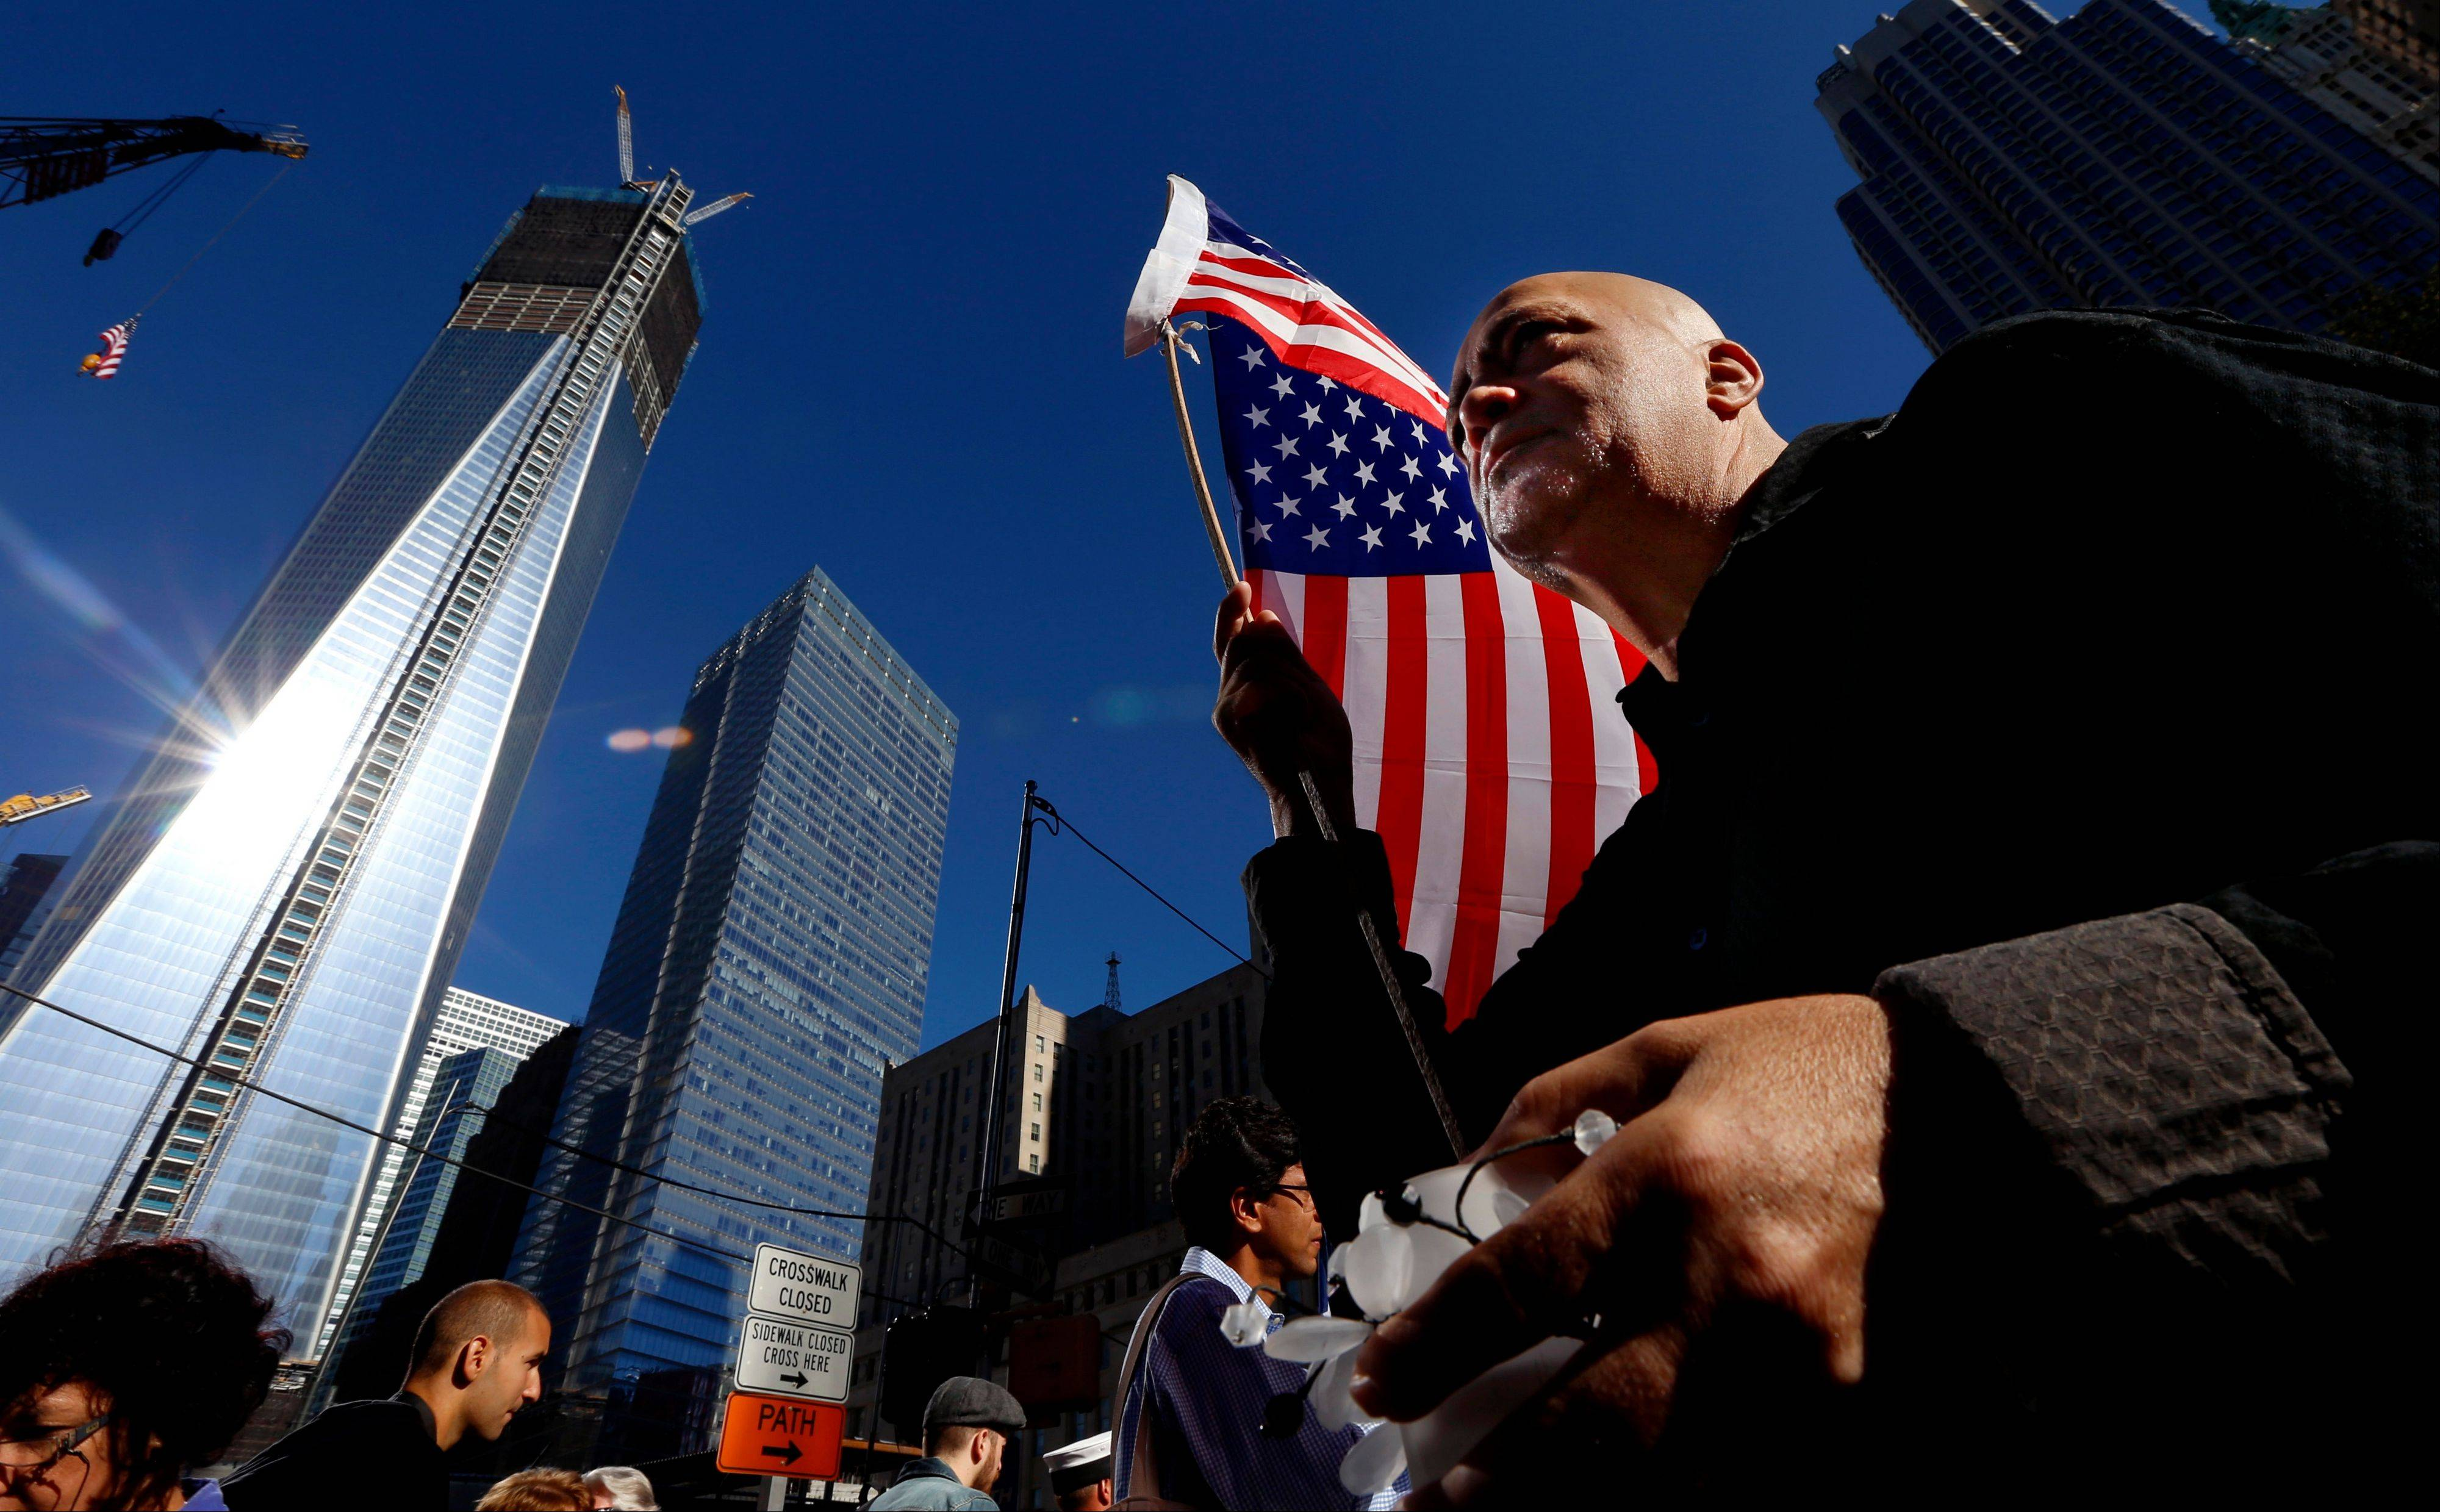 Marcio Rodriguez holds a United States flag as he pays respects in front of the construction site of One World Trade Center during the 11th anniversary of the Sept. 11 terrorist attacks in New York.